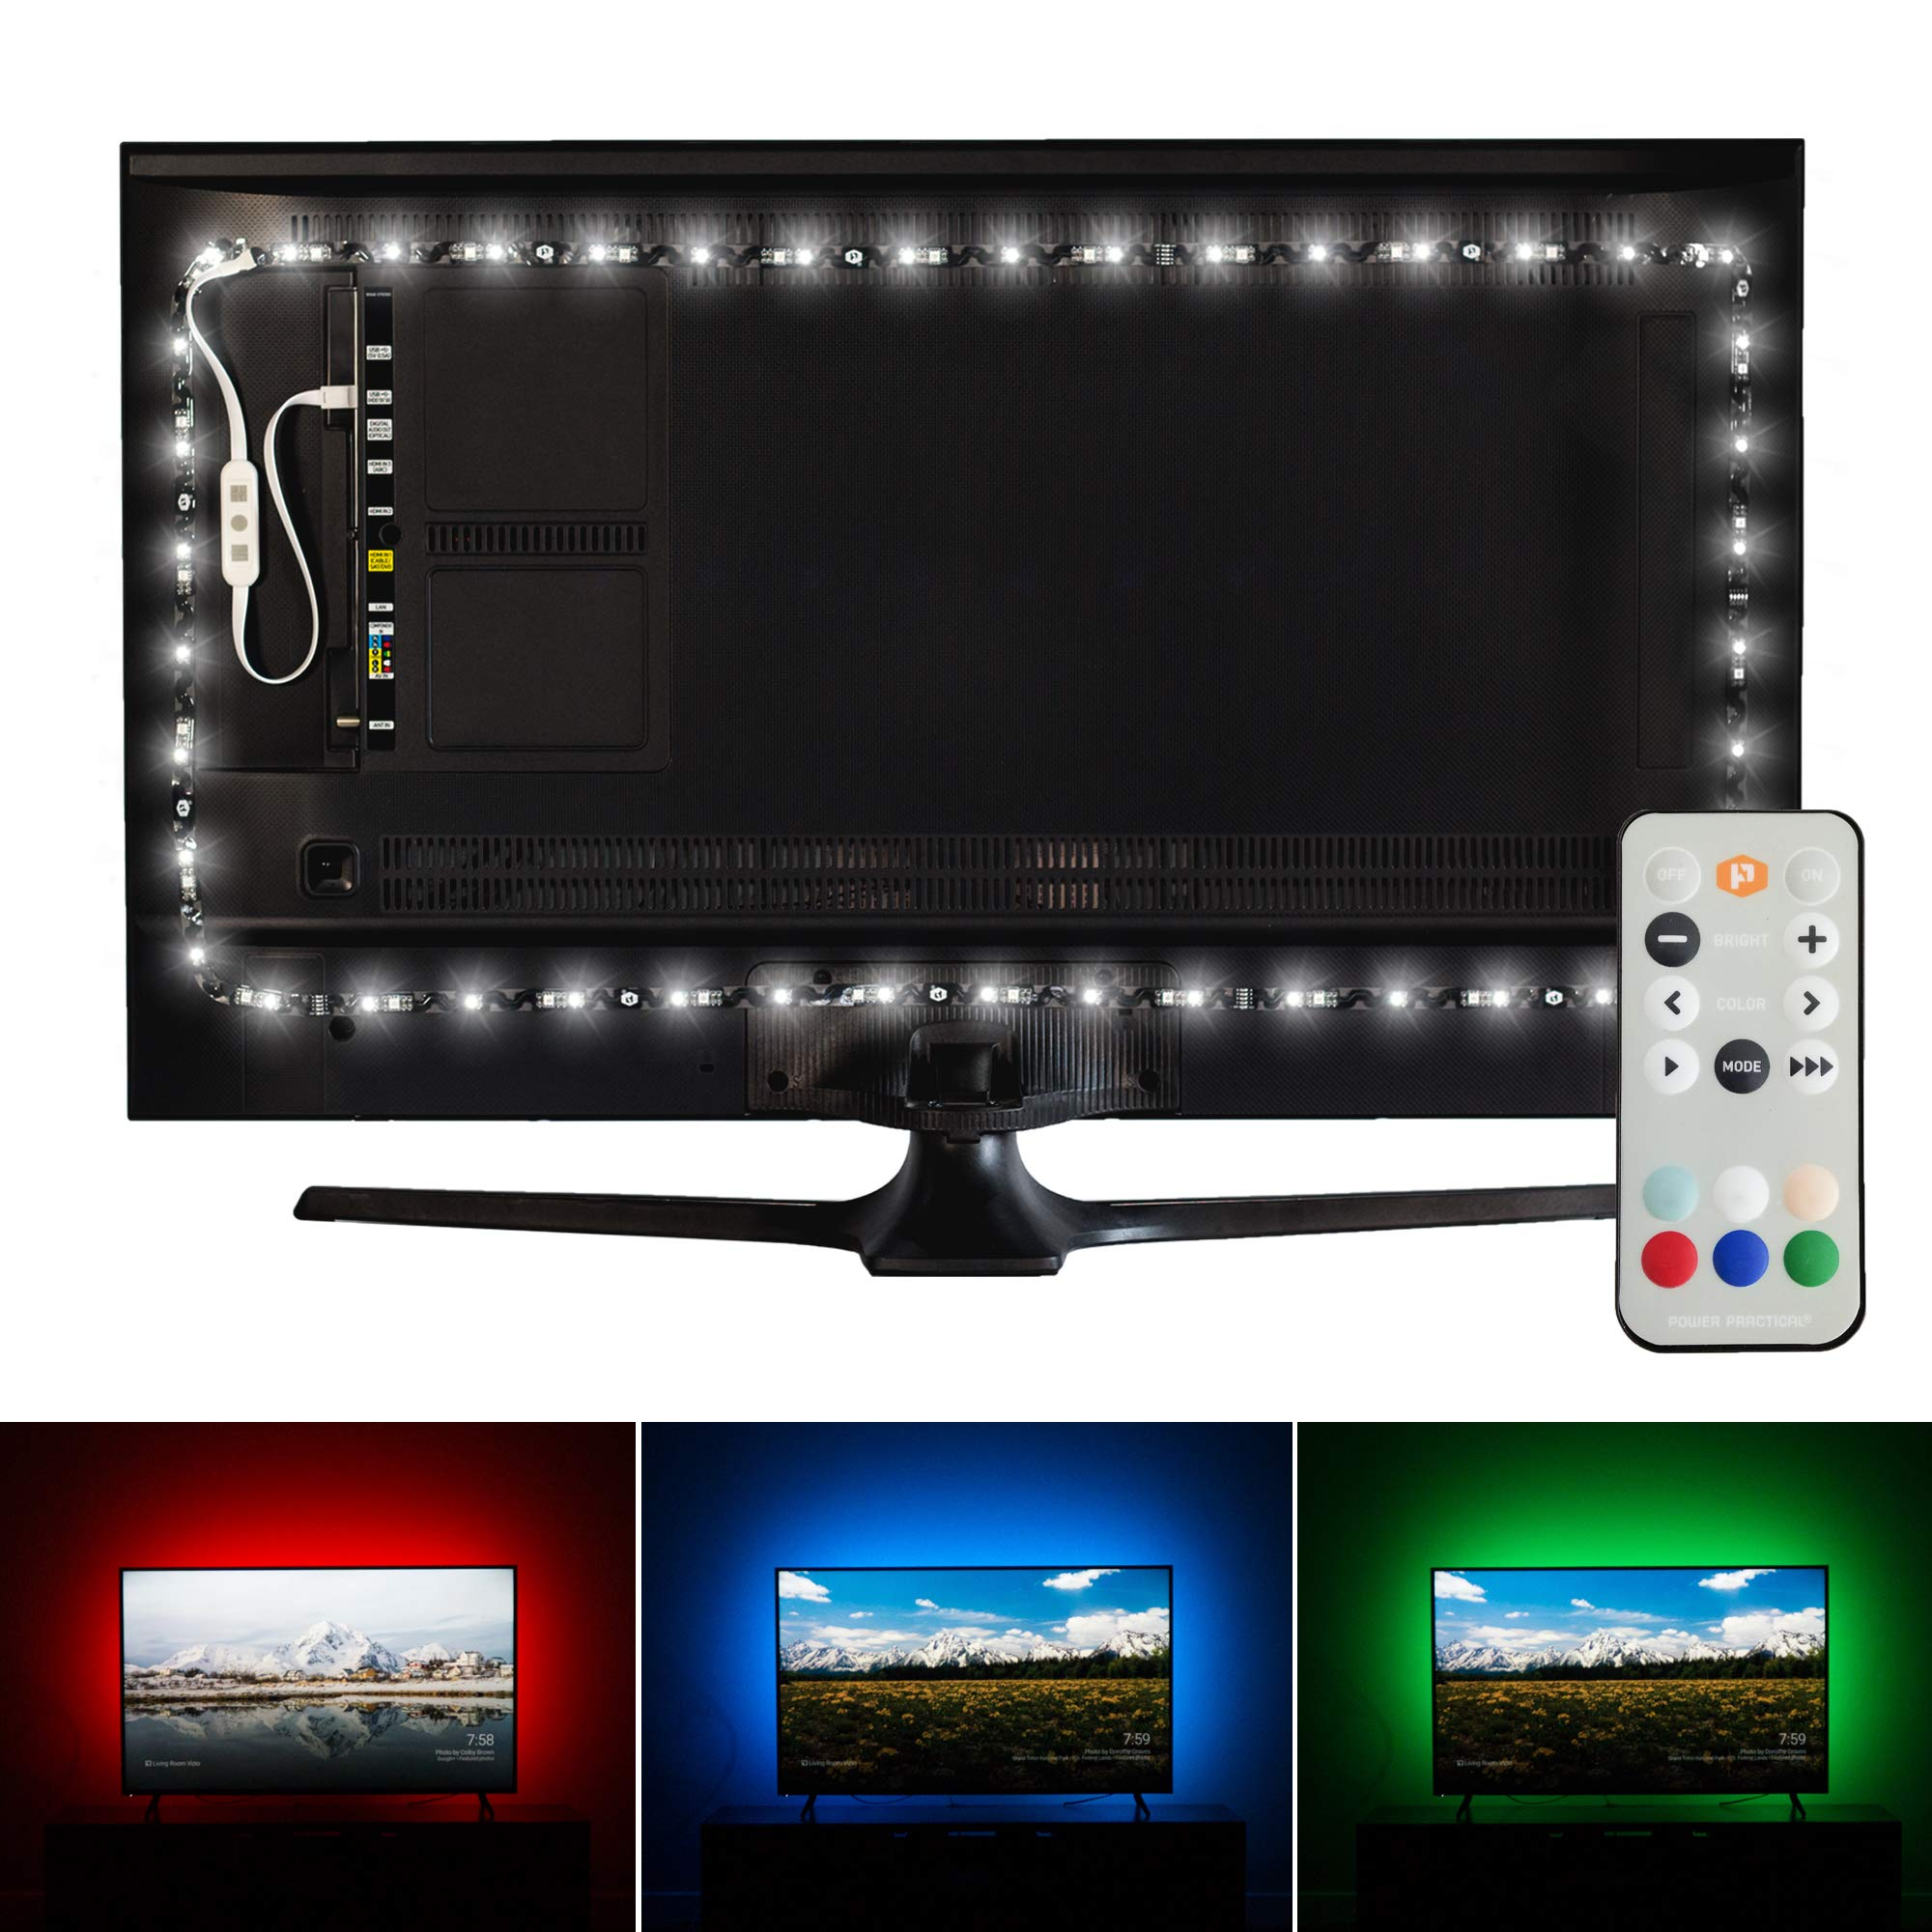 Luminoodle Professional Bias Lighting for HDTV | 15 Colors + 6500K True White LED TV Backlight Adhesive RGB+W Strip Lights with Wireless Remote, Dimmer - Pro - X-Large (41''-59'' TV)